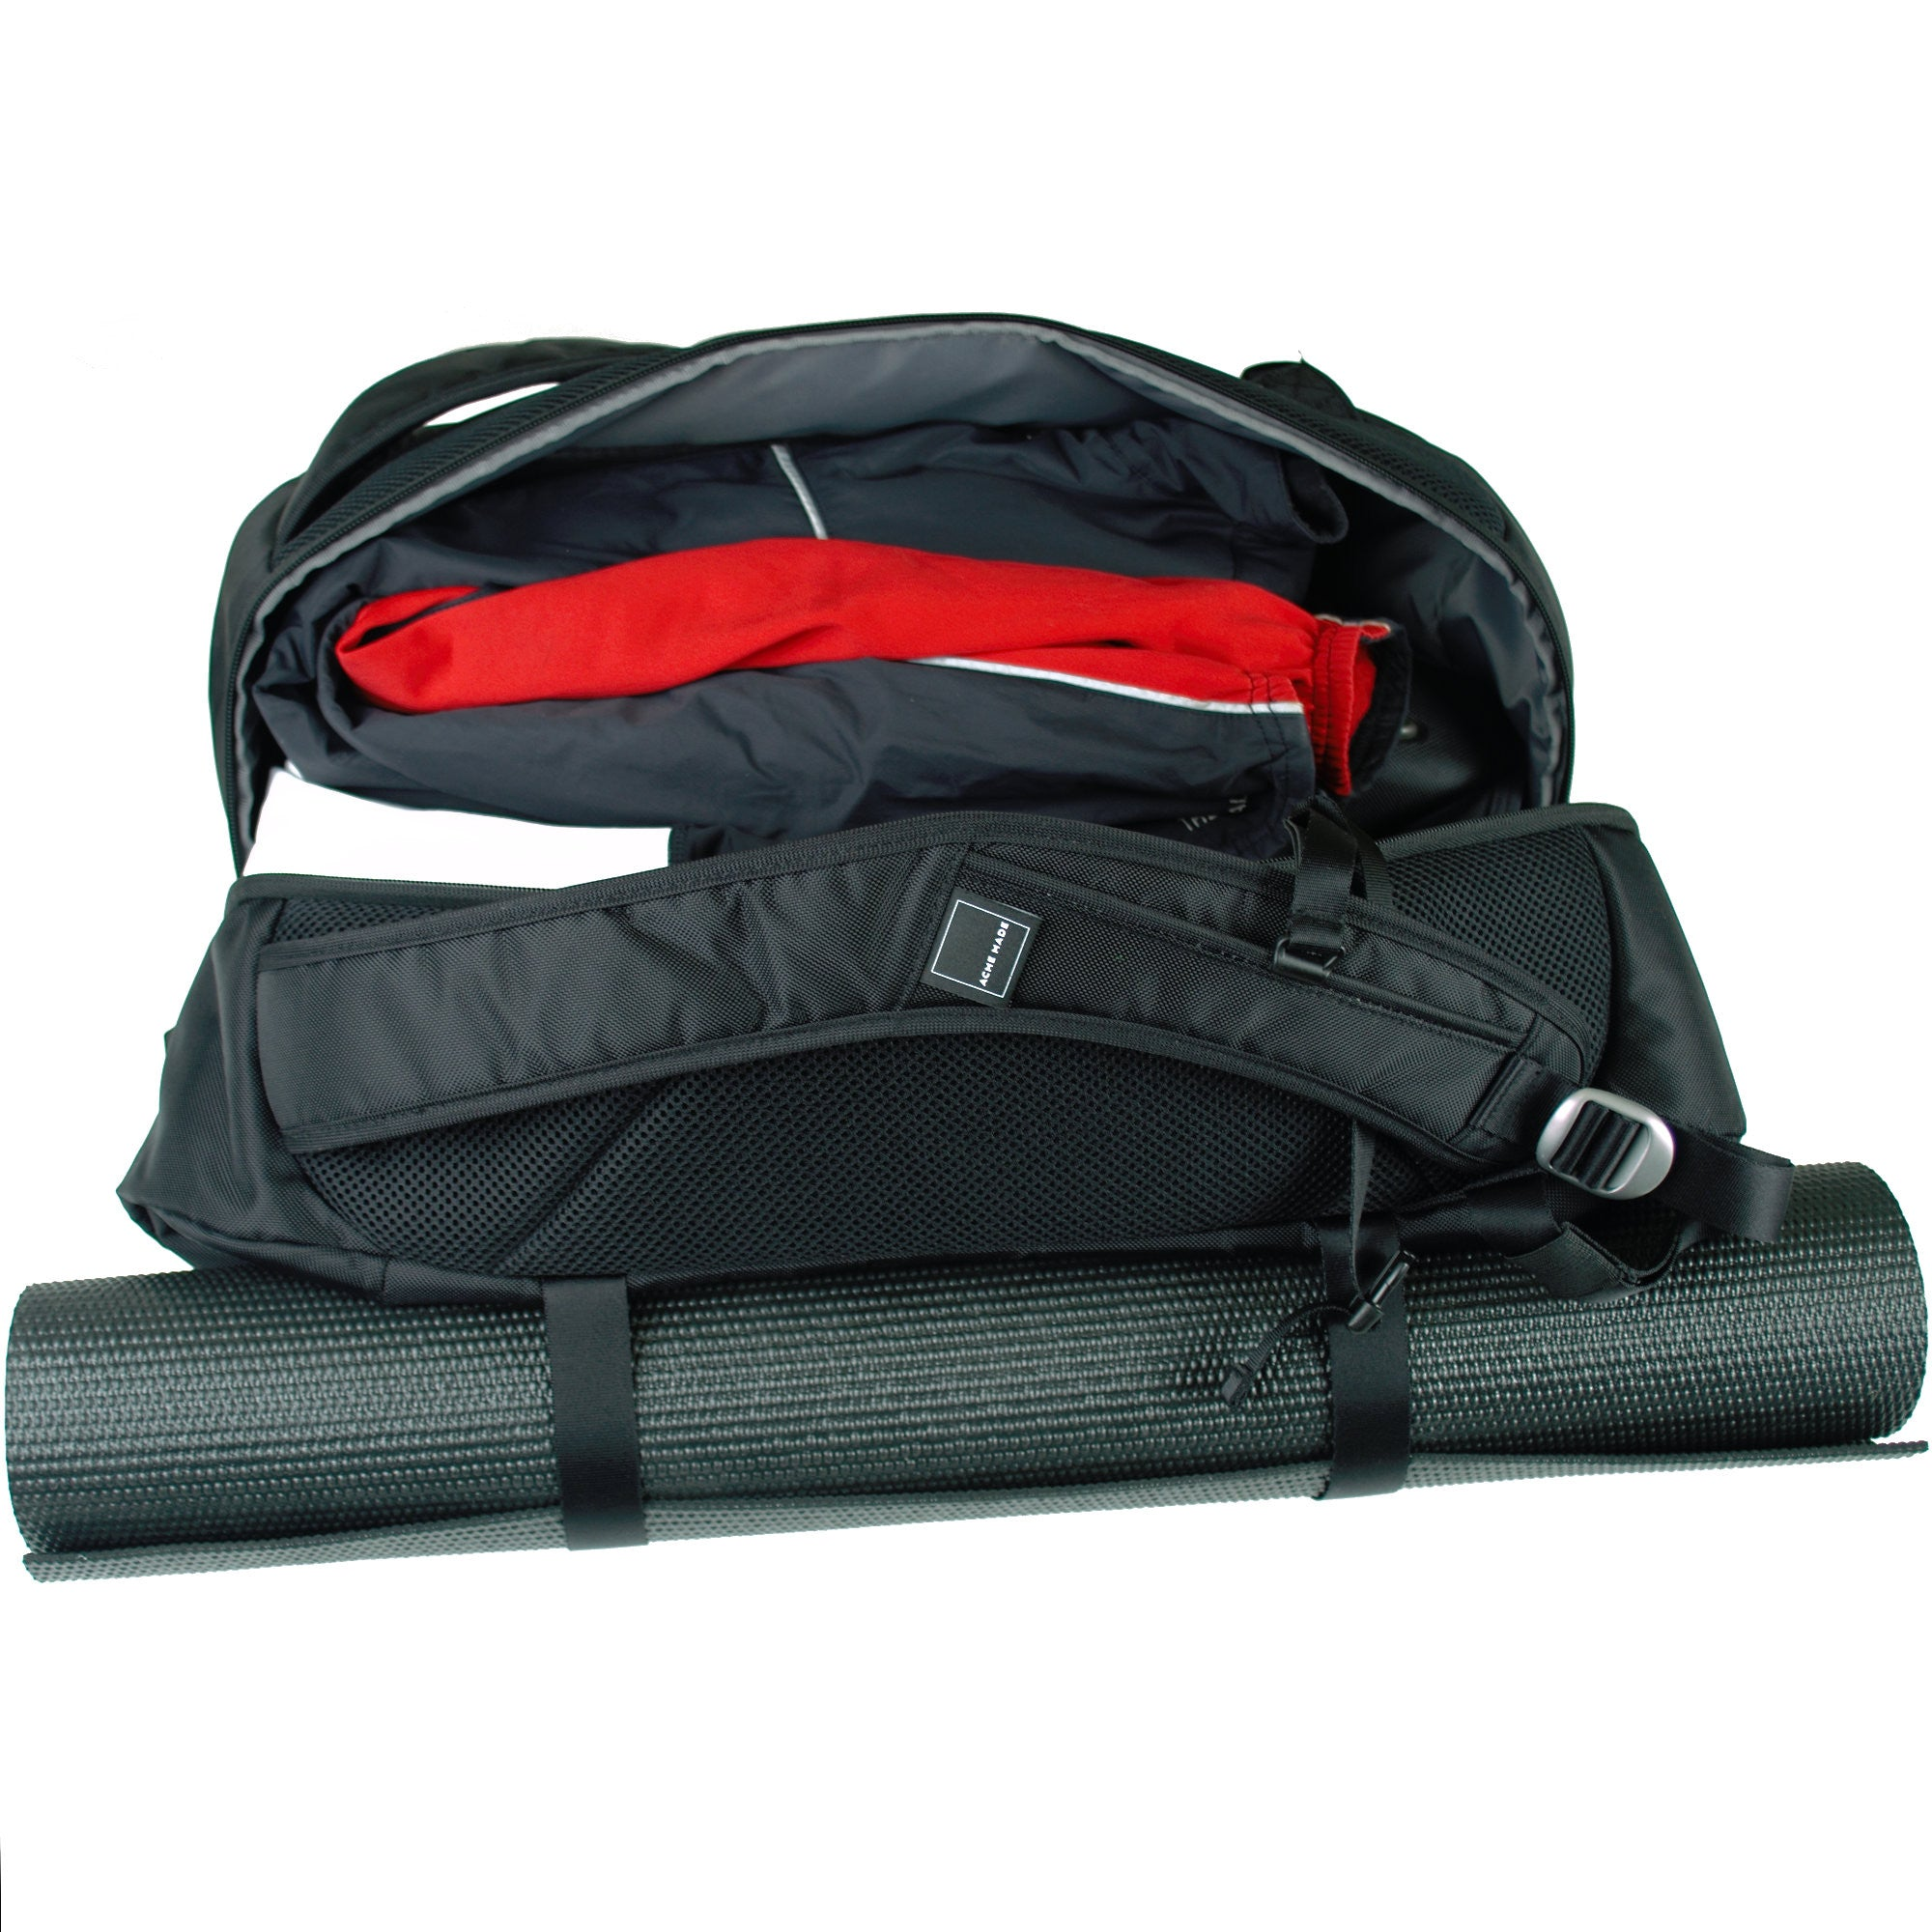 Union Street Gym Backpack Open Yoga Mat · Union Street Gym Backpack  Stuffing Gym Clothes Into Bag 9cbdb63e6a2ae